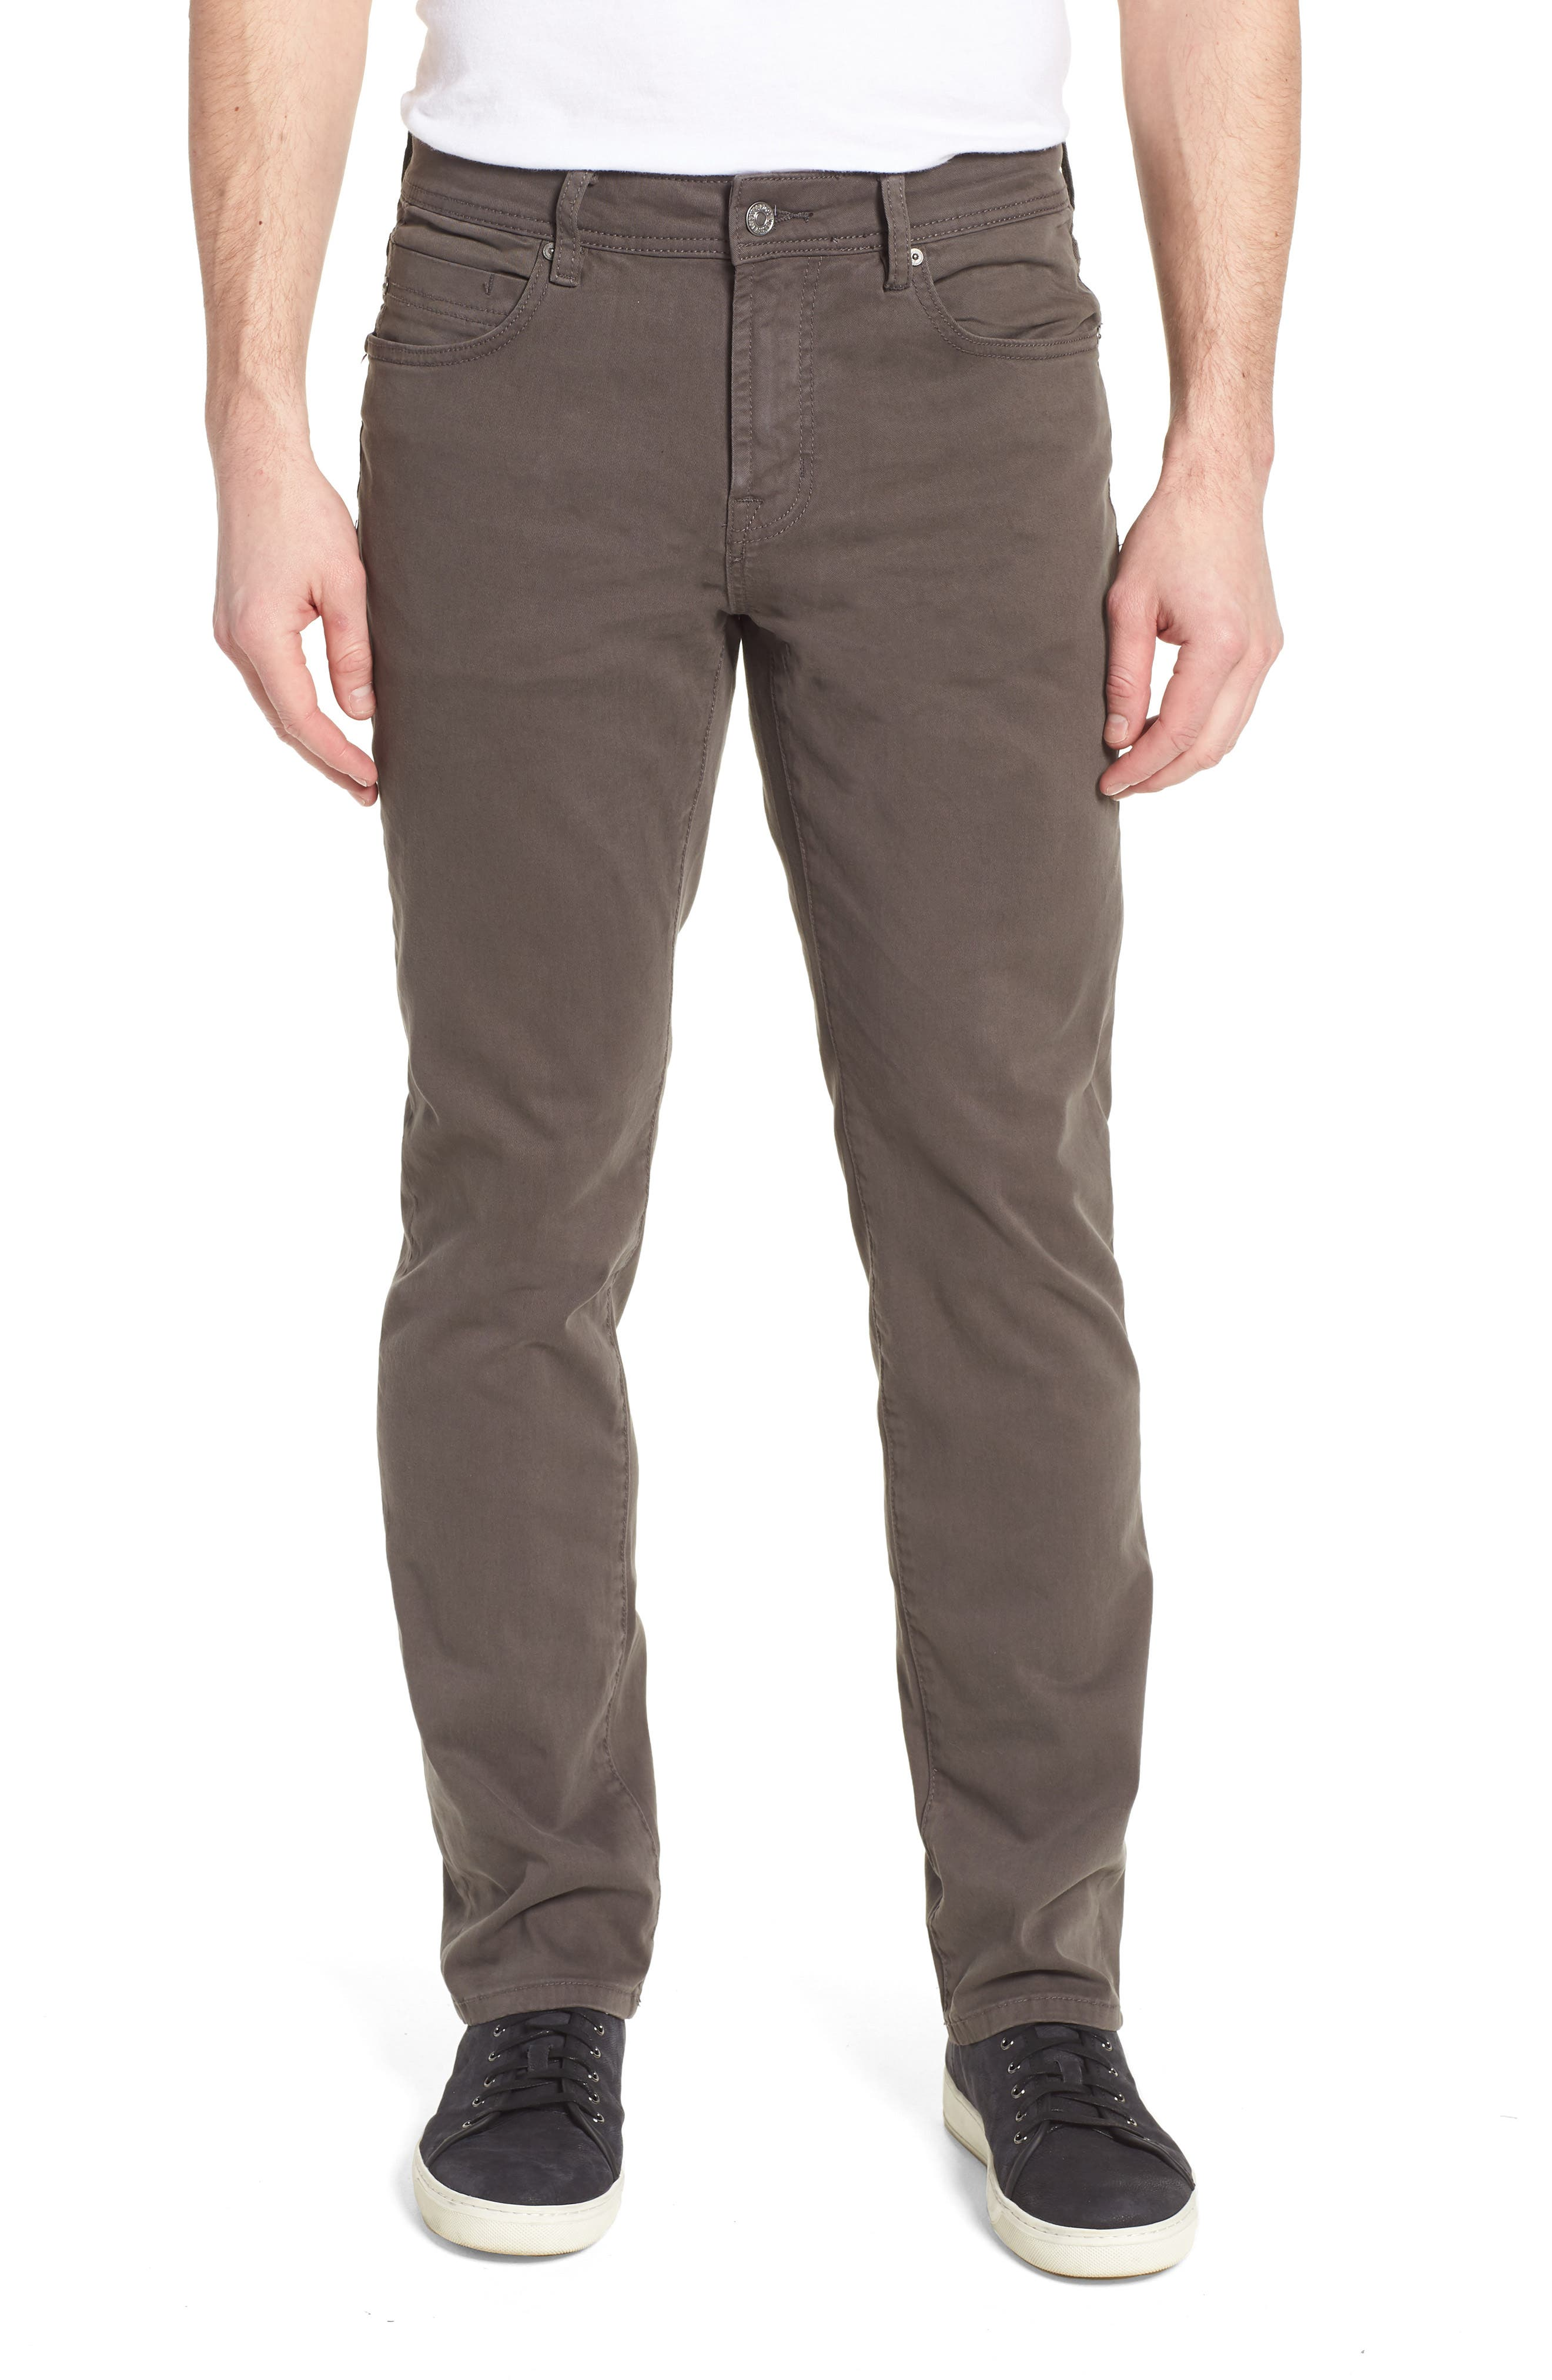 LIVERPOOL, Regent Relaxed Straight Leg Twill Pants, Main thumbnail 1, color, DEEP EARTH